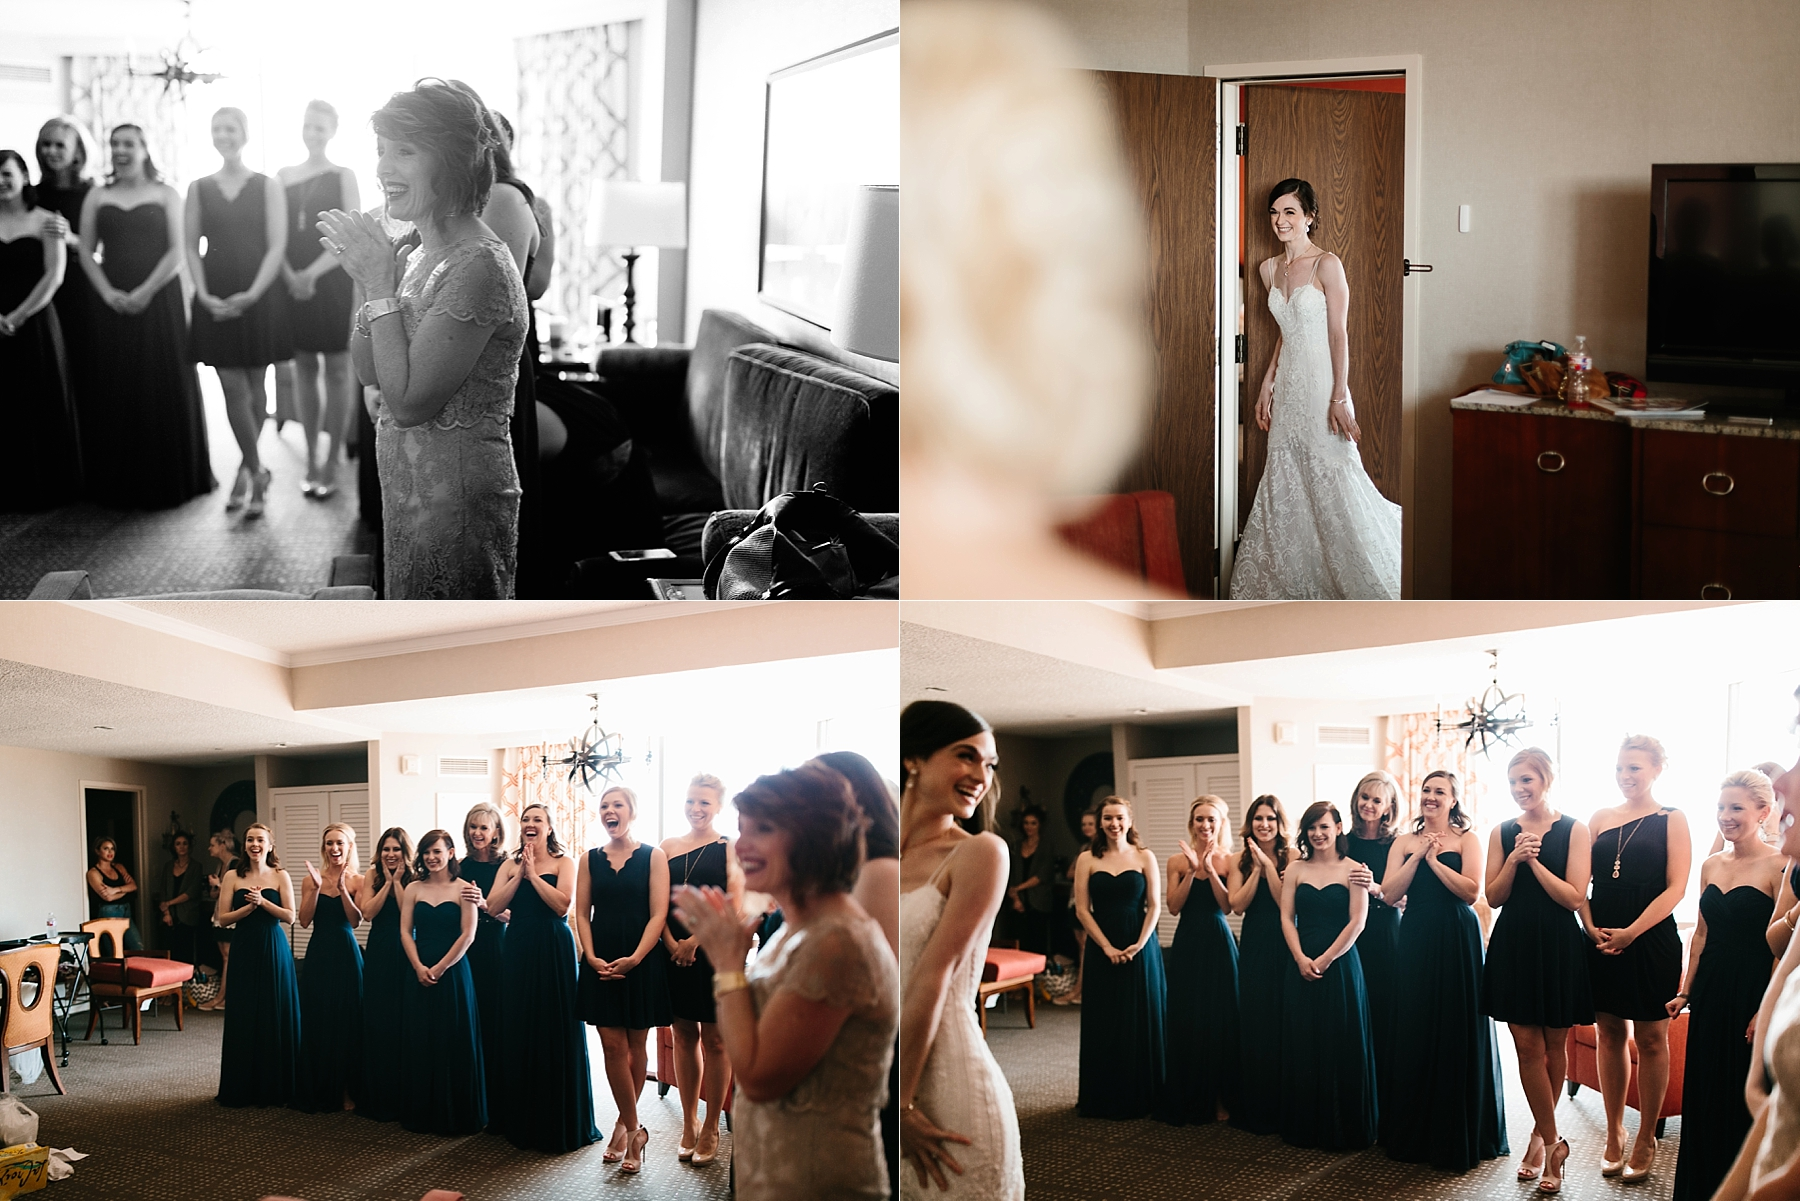 Emily + Caleb _ an elegant, intentional, industrial style wedding with navy + gold accents at 6500 in Dallas, TX by North Texas Wedding Photographer Rachel Meagan Photography _ 059